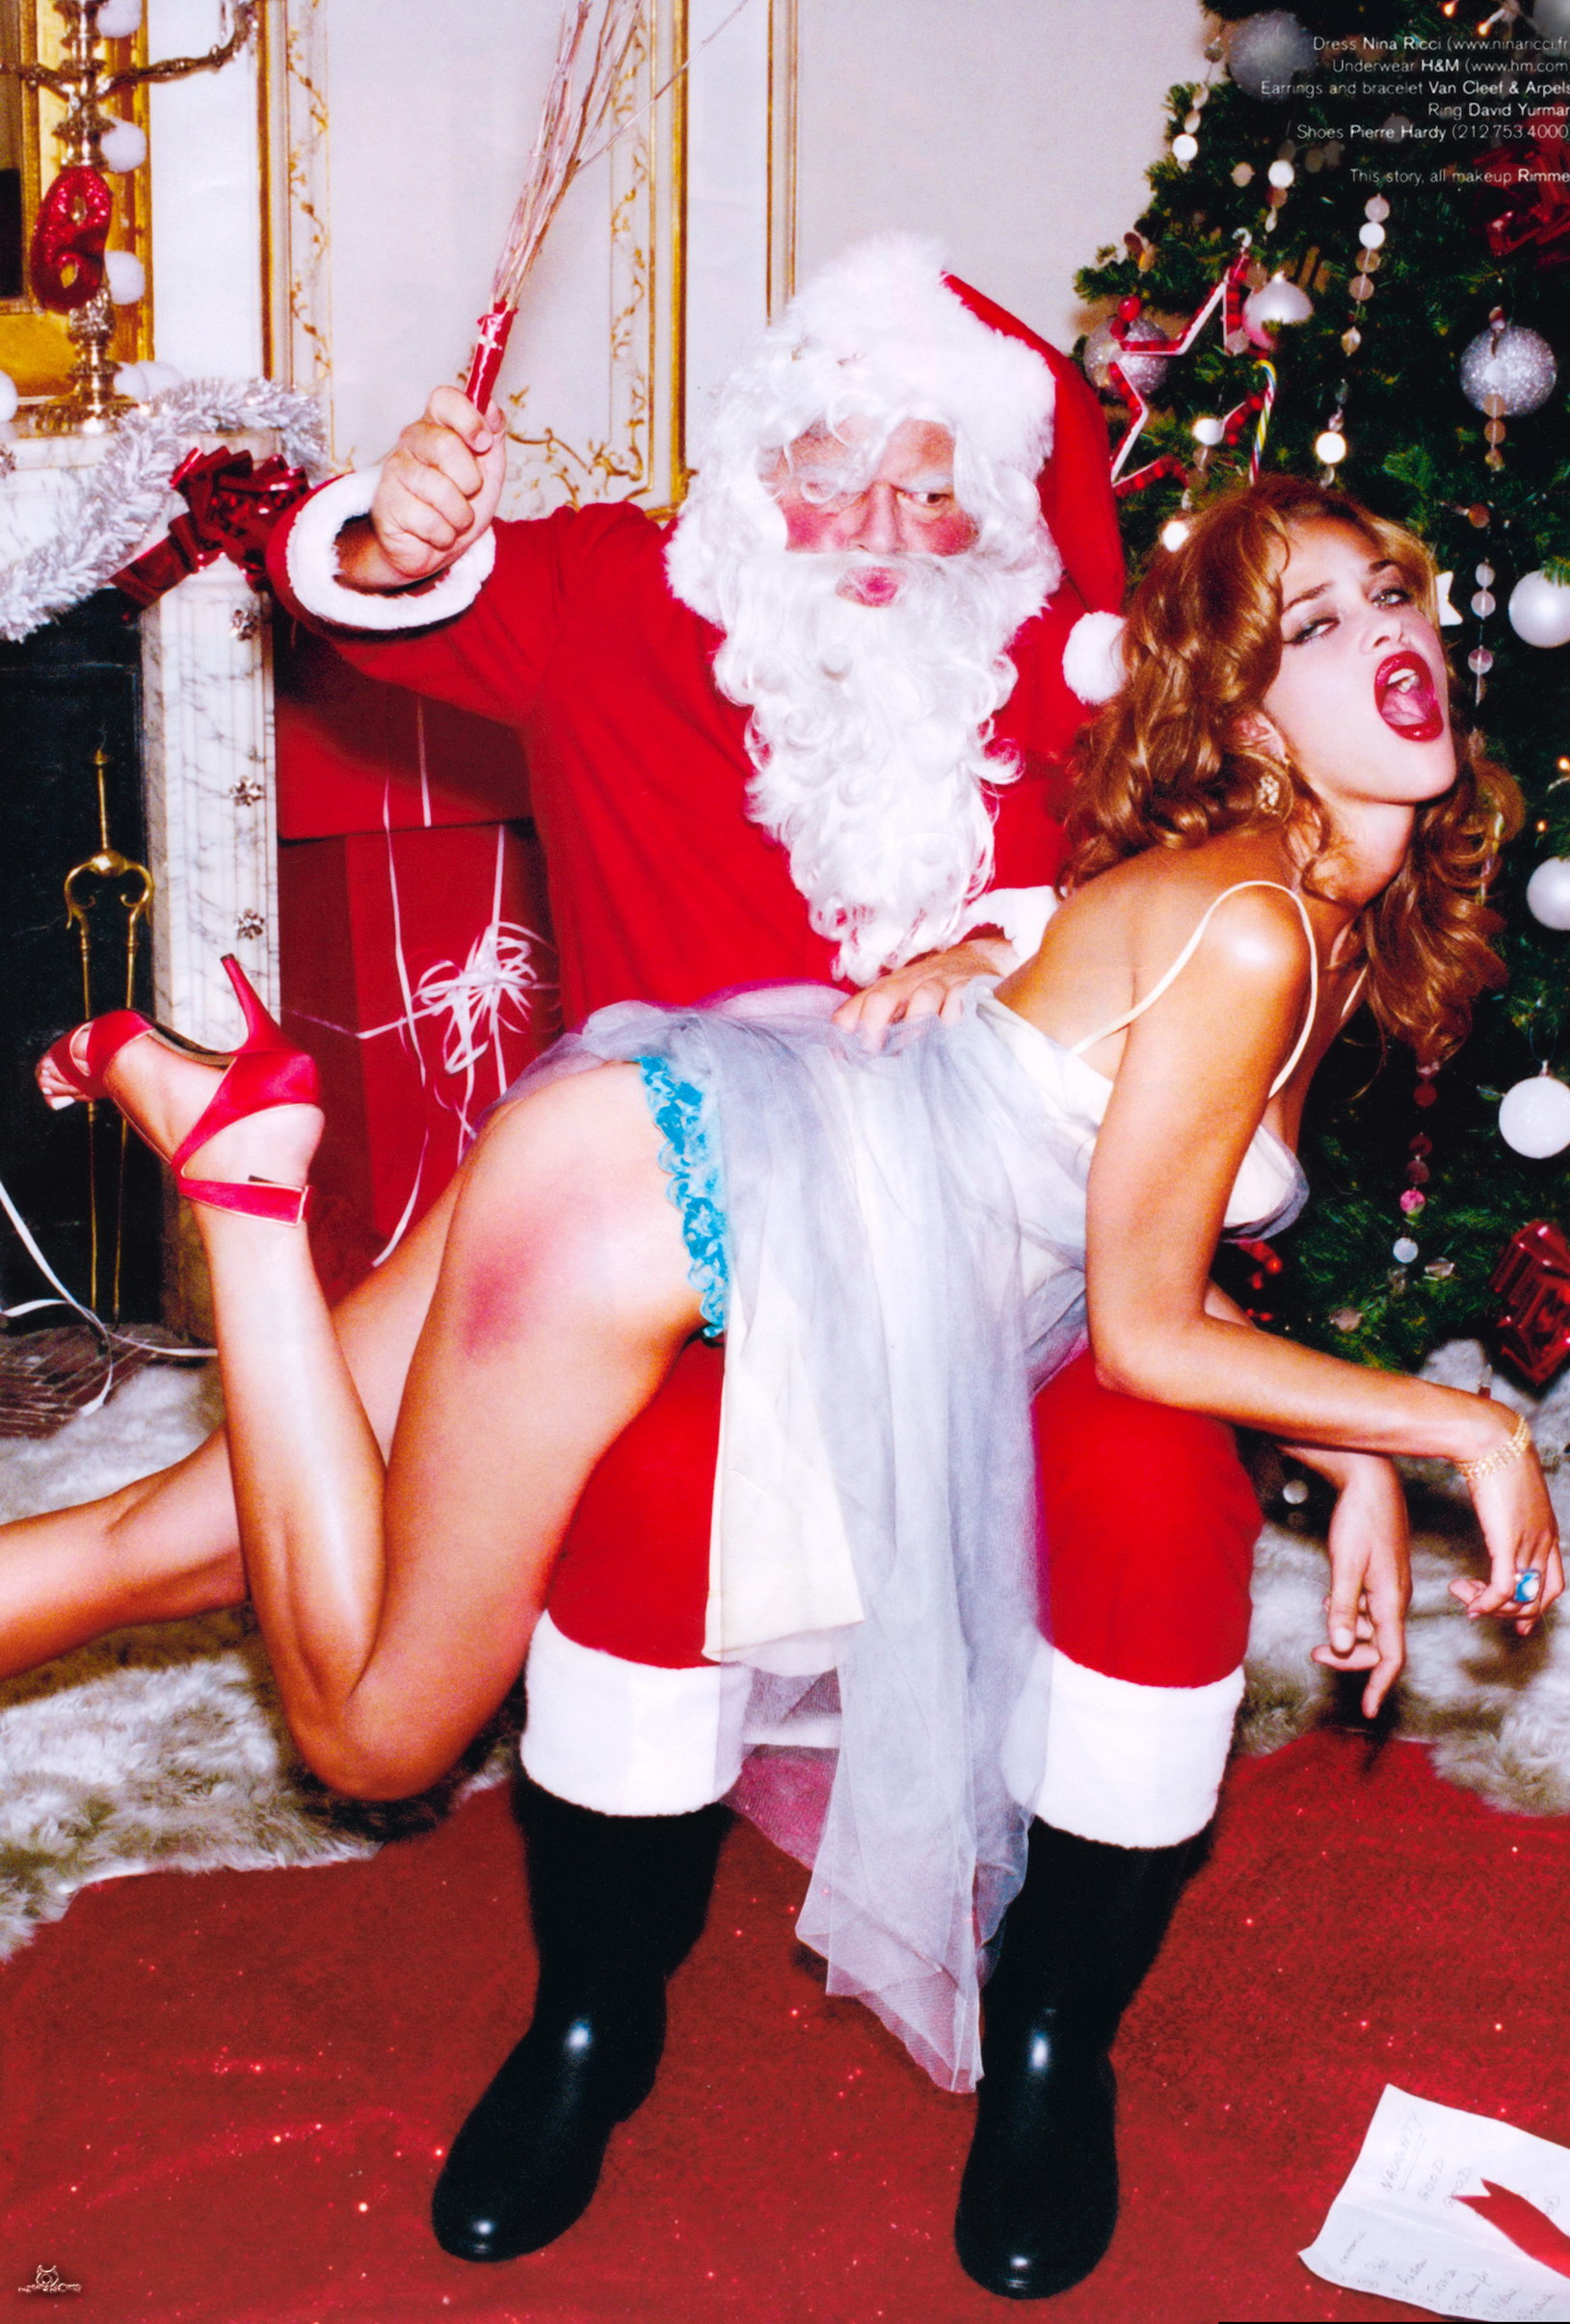 Naughty christmas girl pics sex gallery